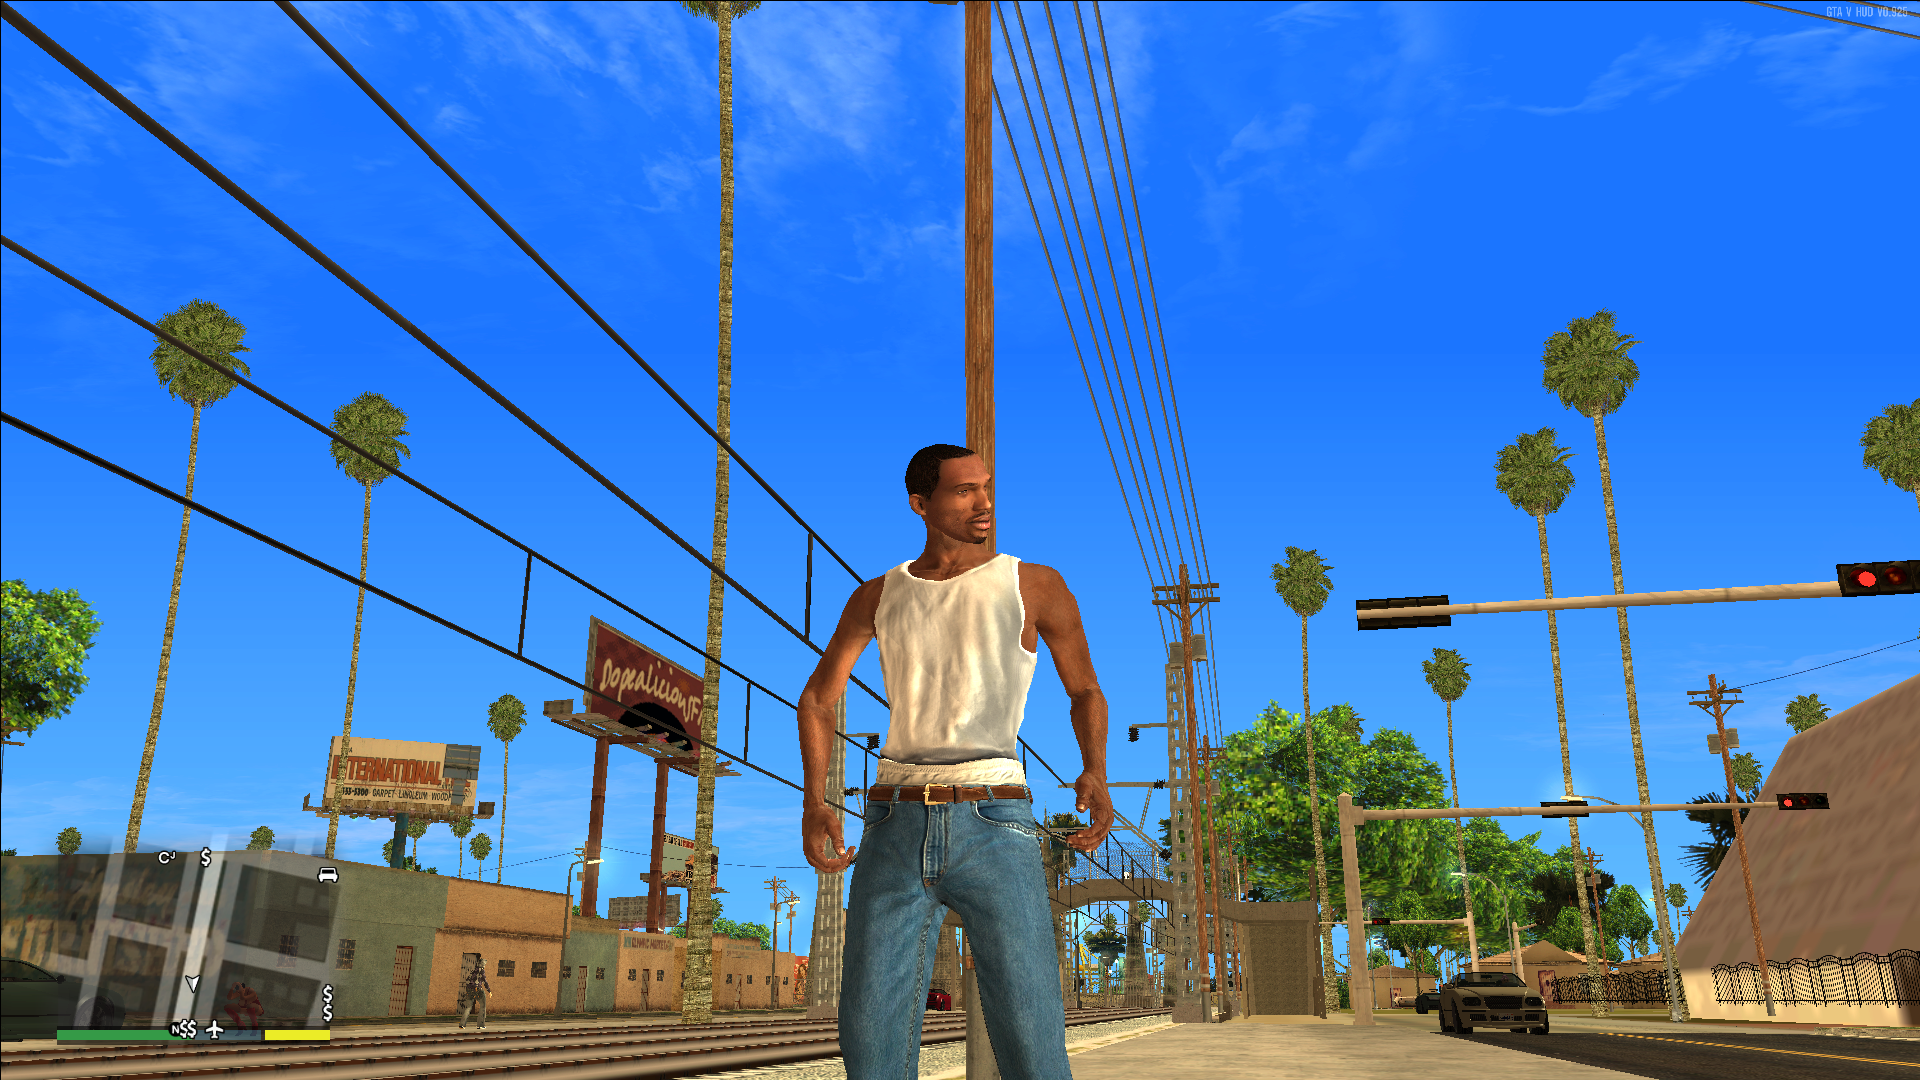 Carl Johnson Remastered image - GTA V San Andreas mod for Grand